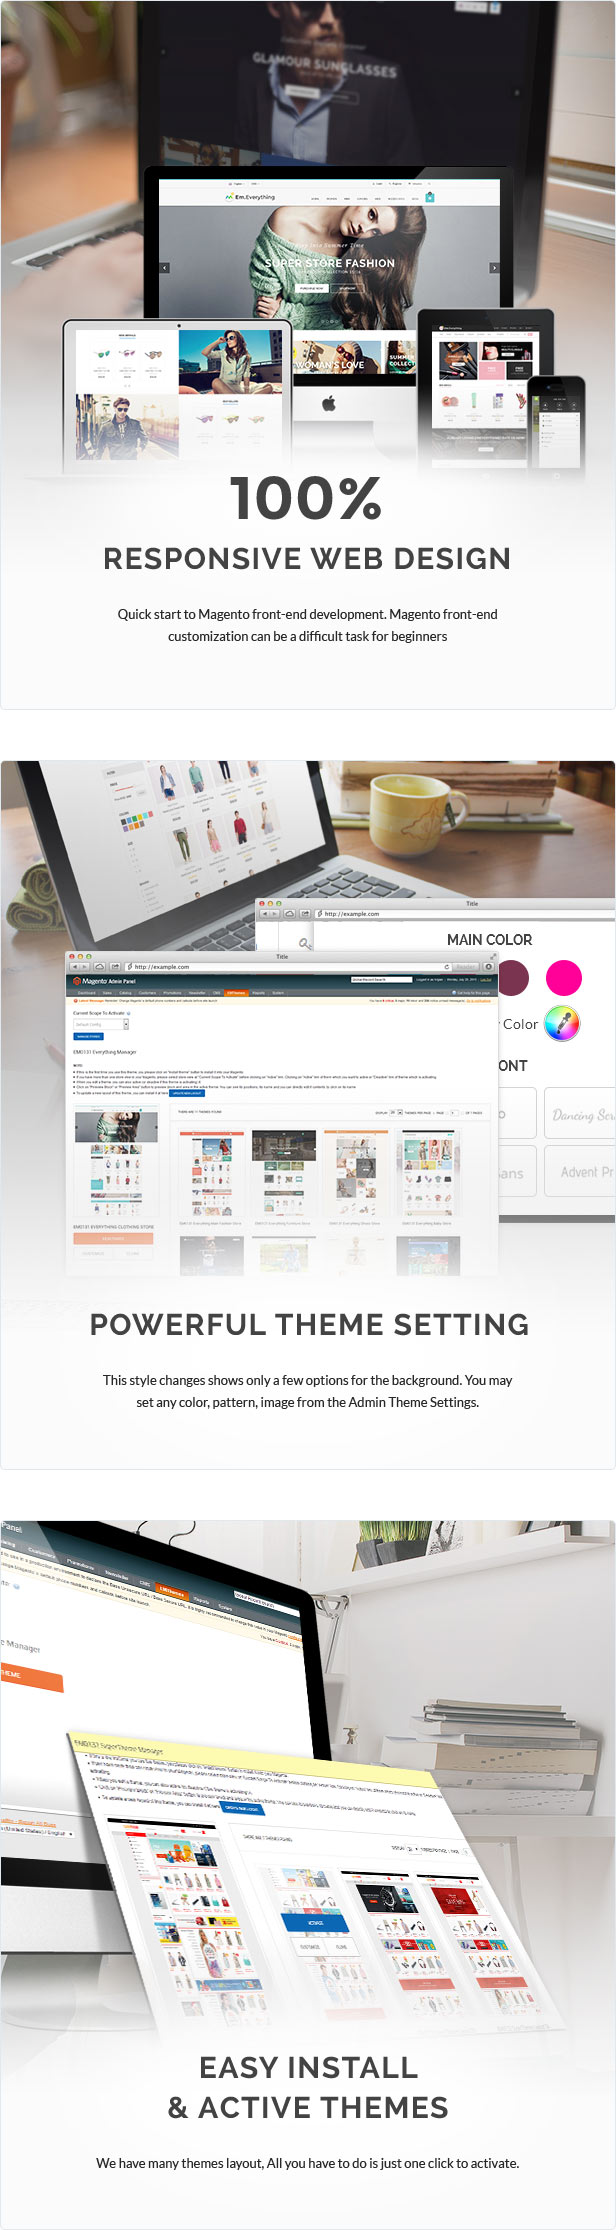 responsive web design, powerful theme setting, easy install and active themes